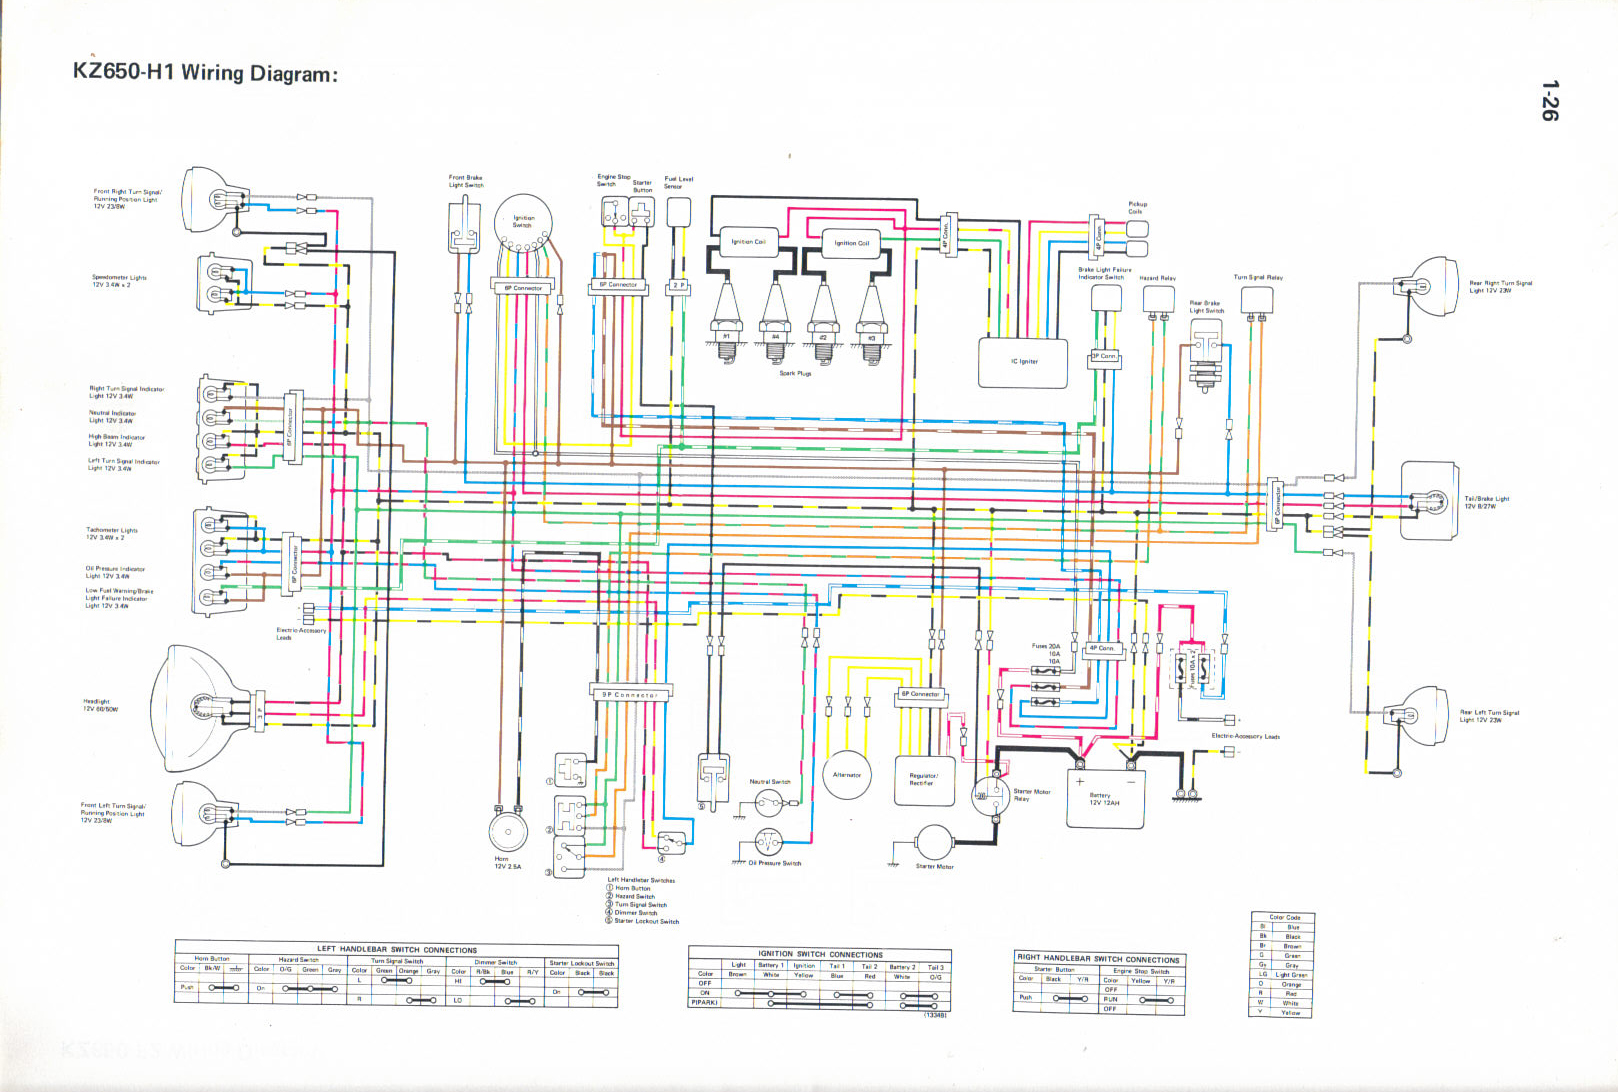 KZ650 H1 2007 ex500 wiring diagram honda cbr600rr wiring diagram \u2022 wiring EX500 Connector Picture at fashall.co